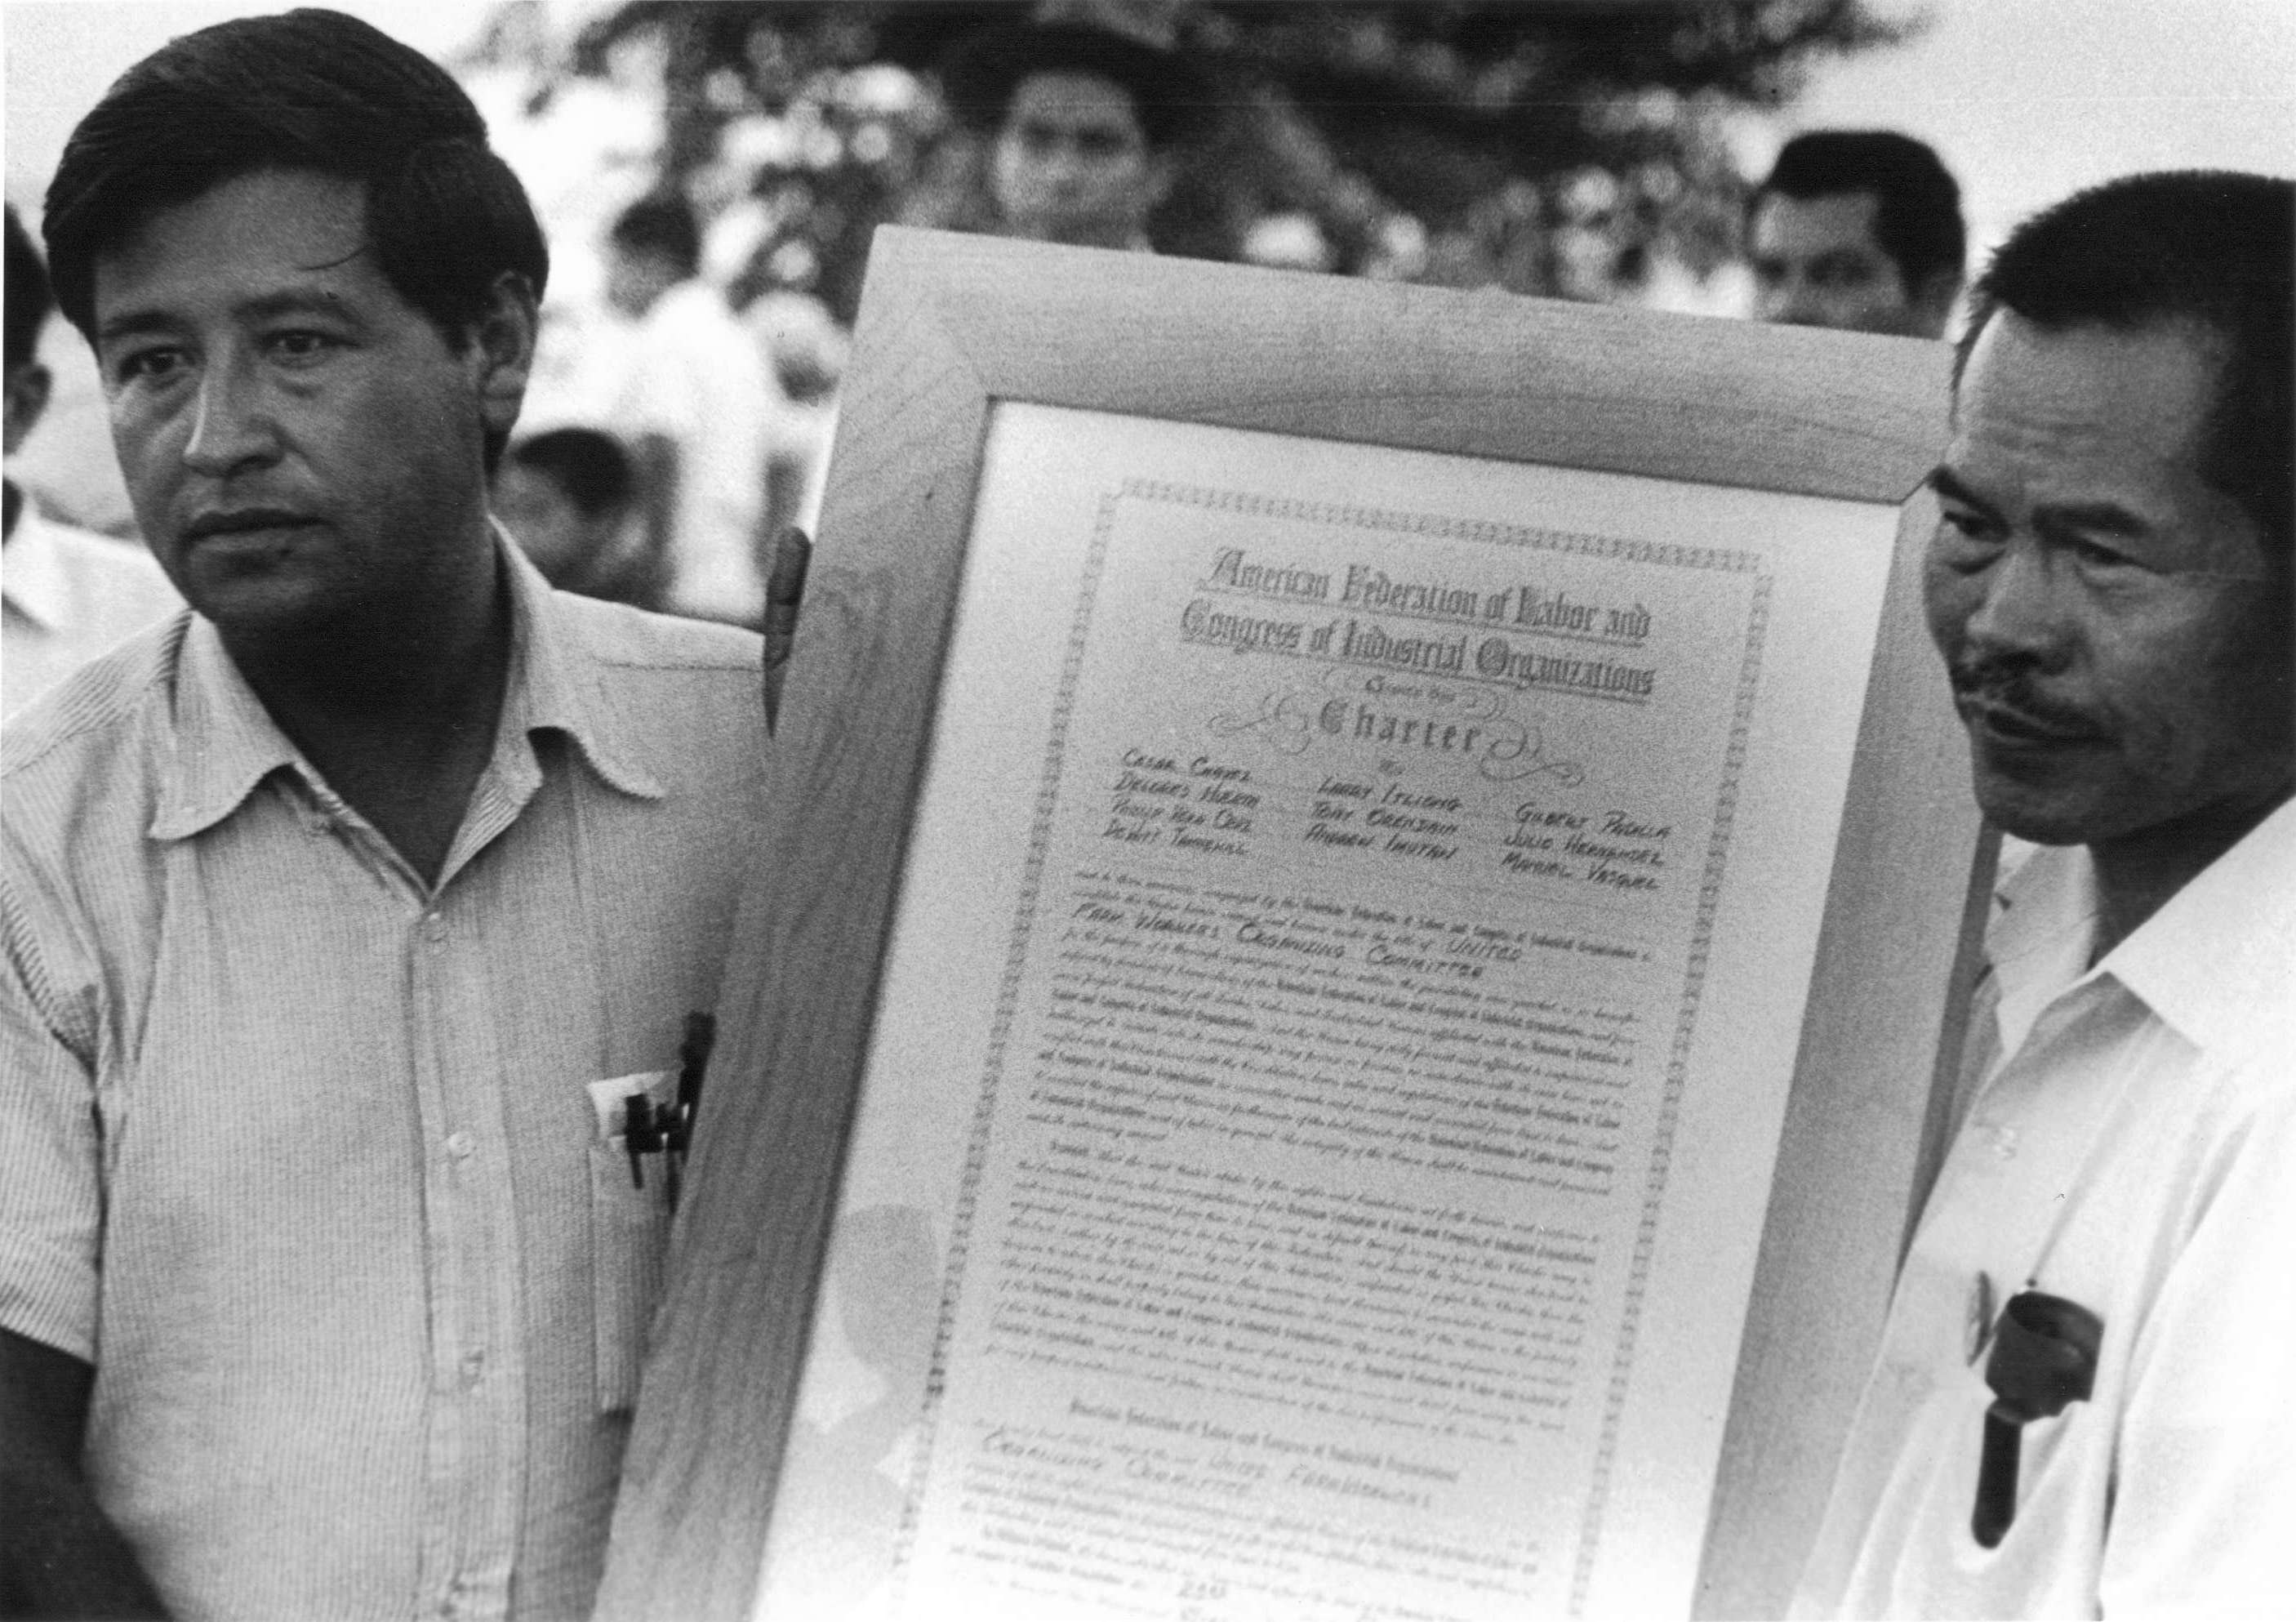 TRAILER: 'Delano Manongs' Celebrates the Filipinos Who Fought for Justice Alongside Cesar Chavez